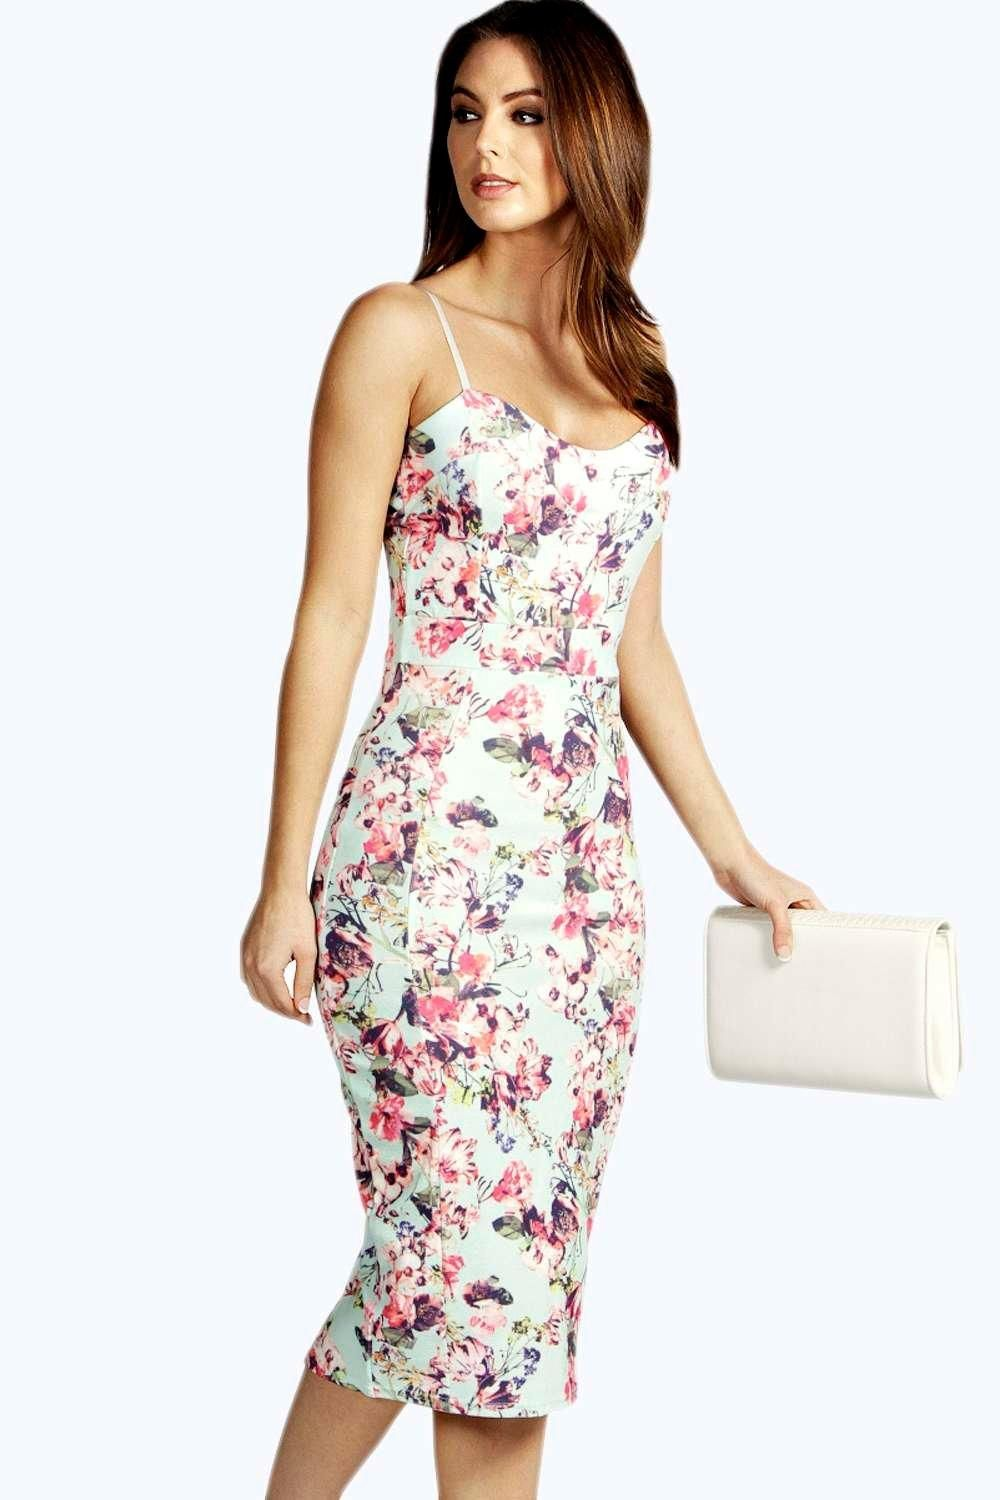 Boohoo Floral Polka Dot Strappy Bodycon Dress Cheap Price Outlet Sale Cheap Footlocker Finishline Marketable Sale Online Shopping Online Outlet Sale Pay With Paypal SOkwhzm400